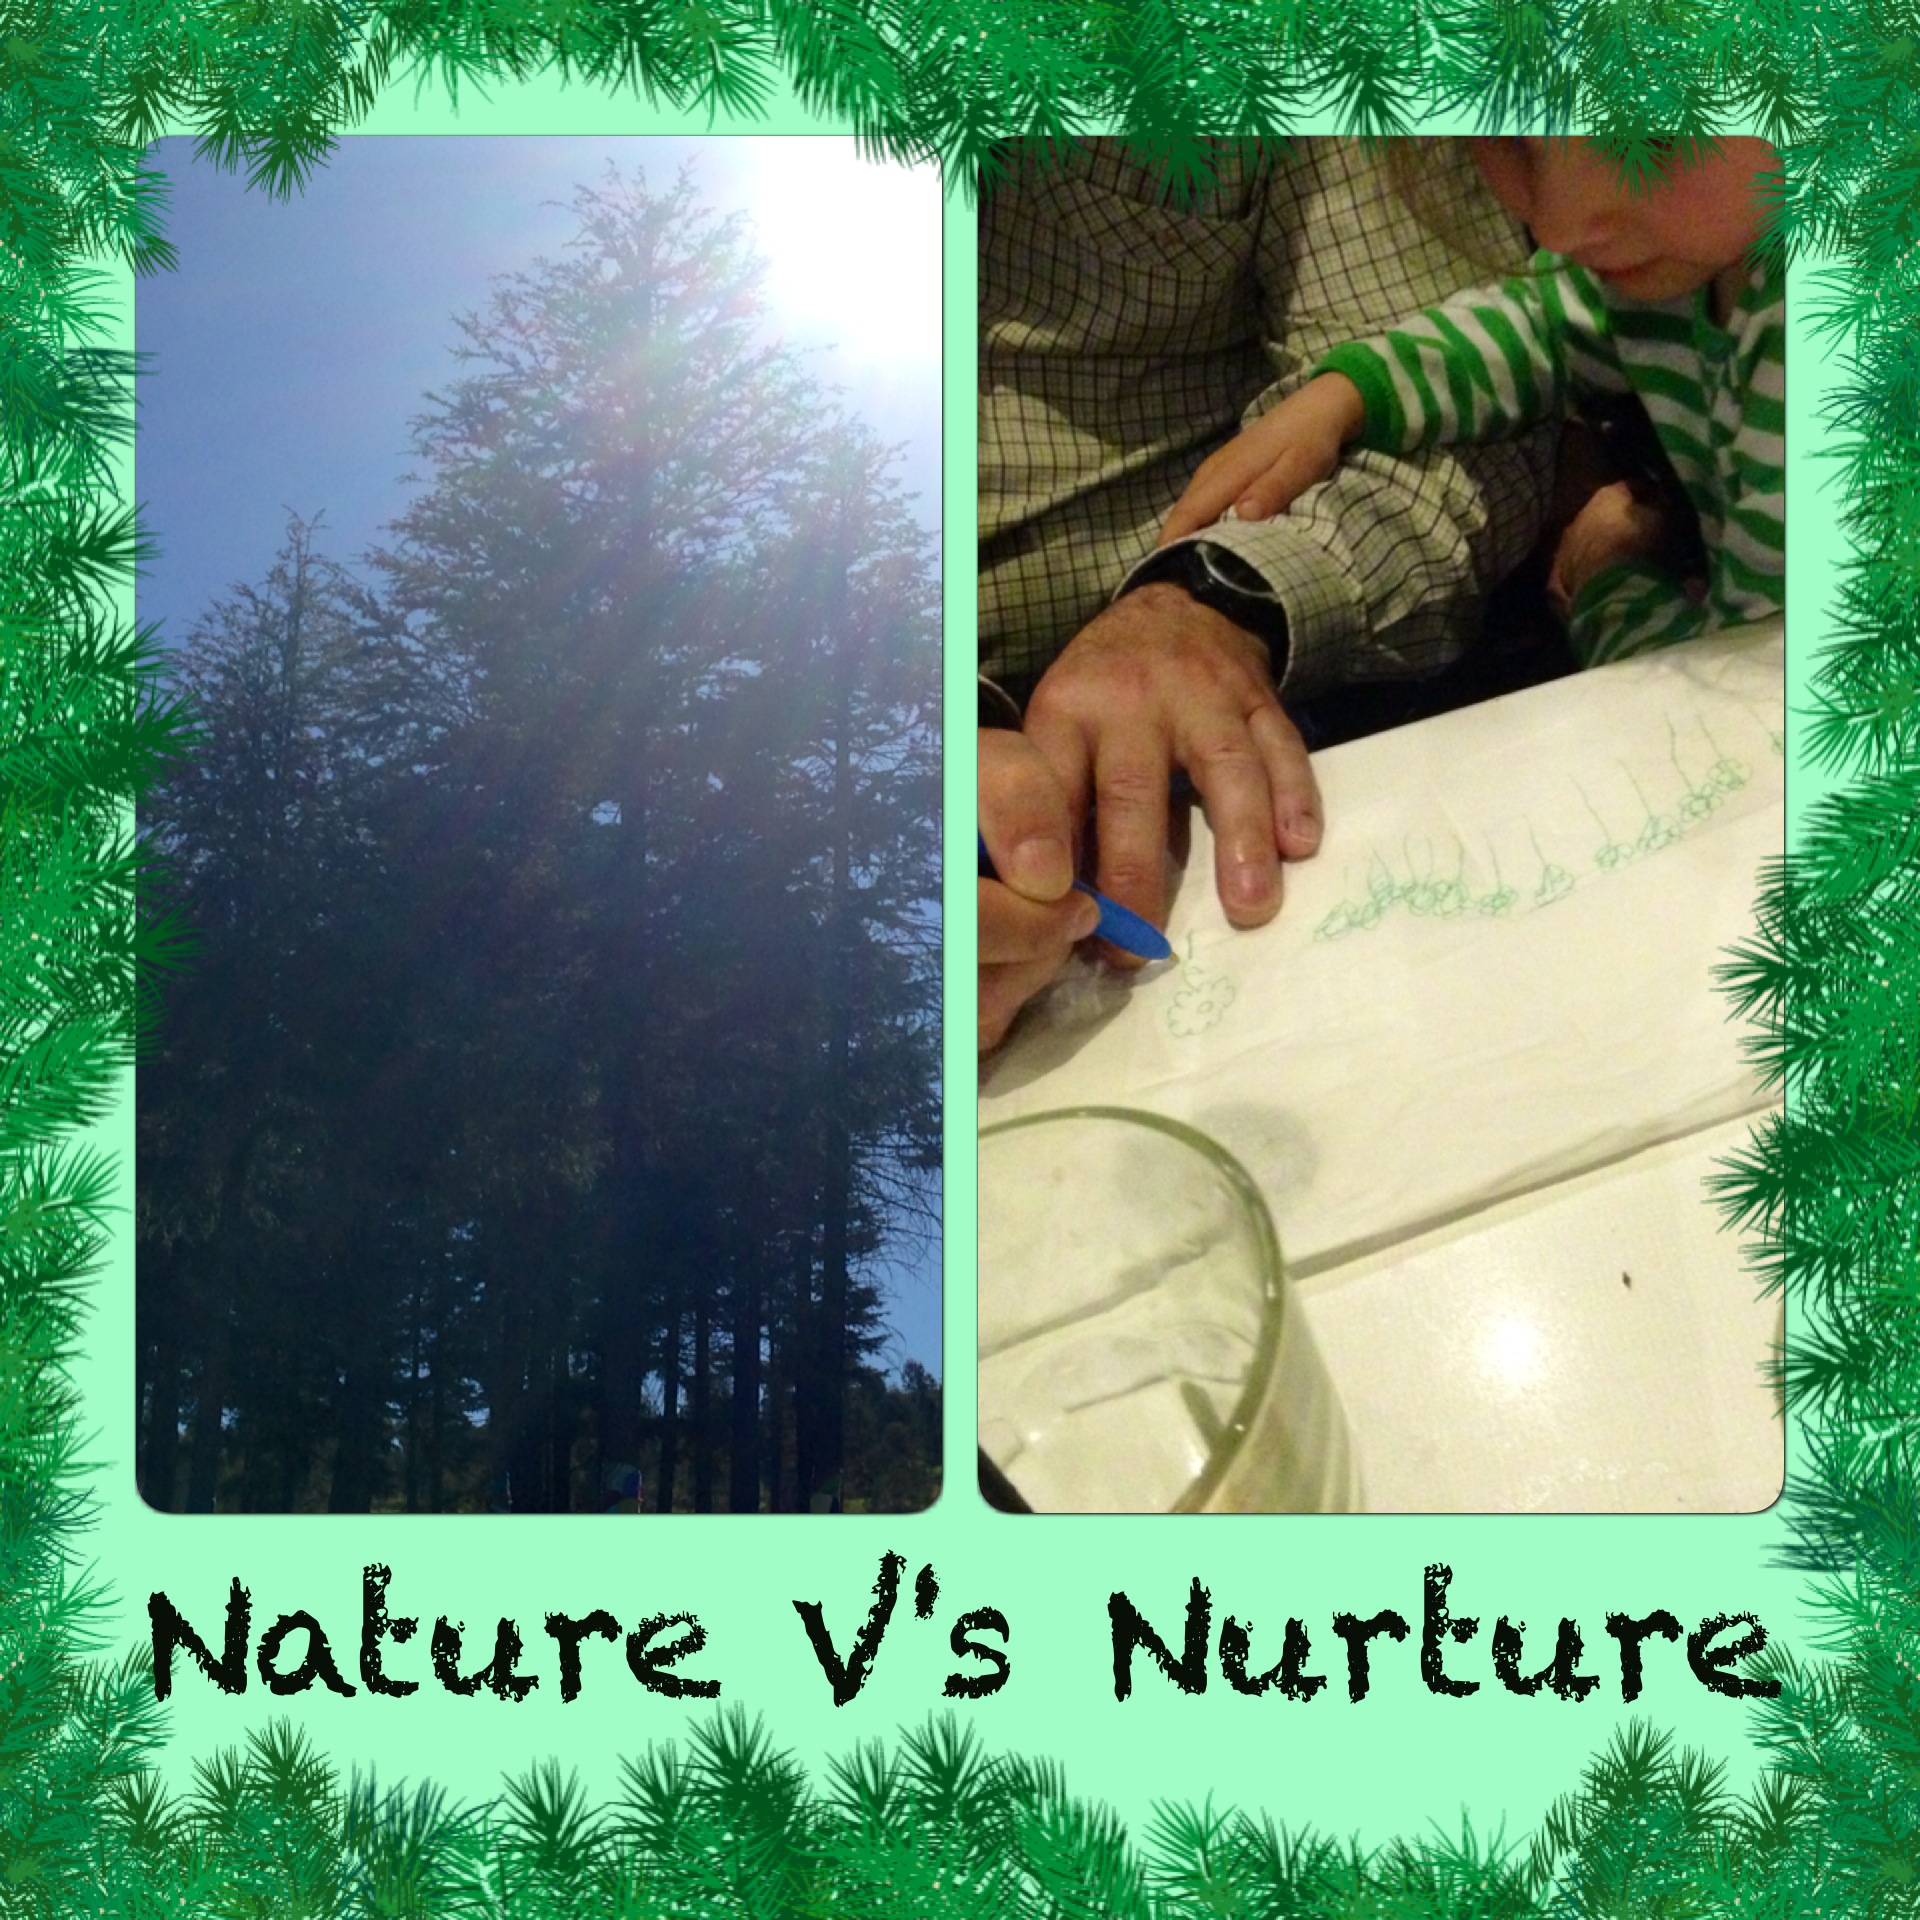 nurture vs nature the role of parenting and genetic inheritances in developing personality traits This classic nature versus nurture argument has continued for decades, and while considered outdated in many scientific circles, remains an important tool for aiding in the determination or explanation of a person's personality.